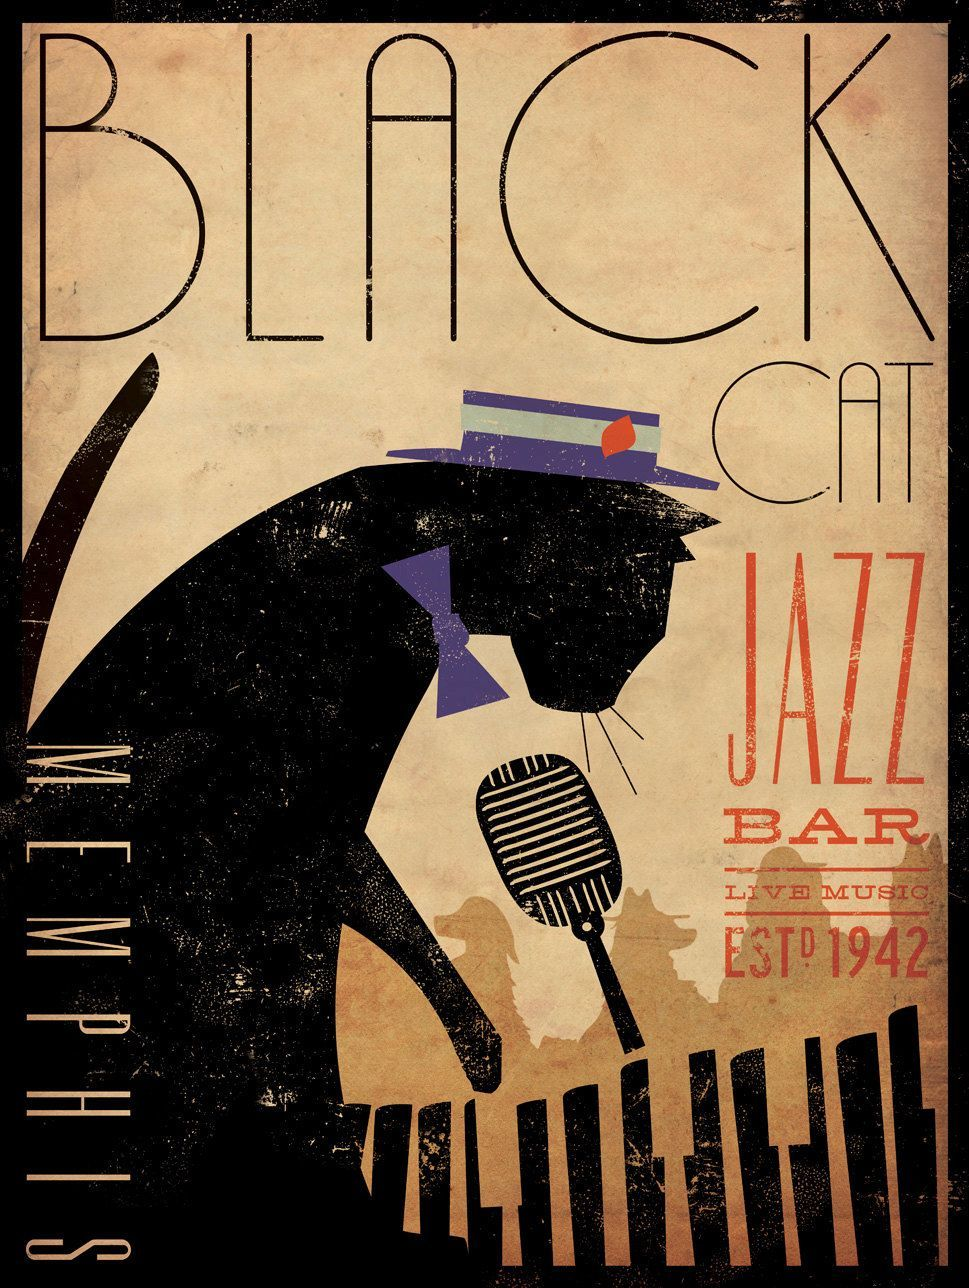 Black Cat Piano Jazz Bar artists print giclee via Etsy ~ by Stephen ...